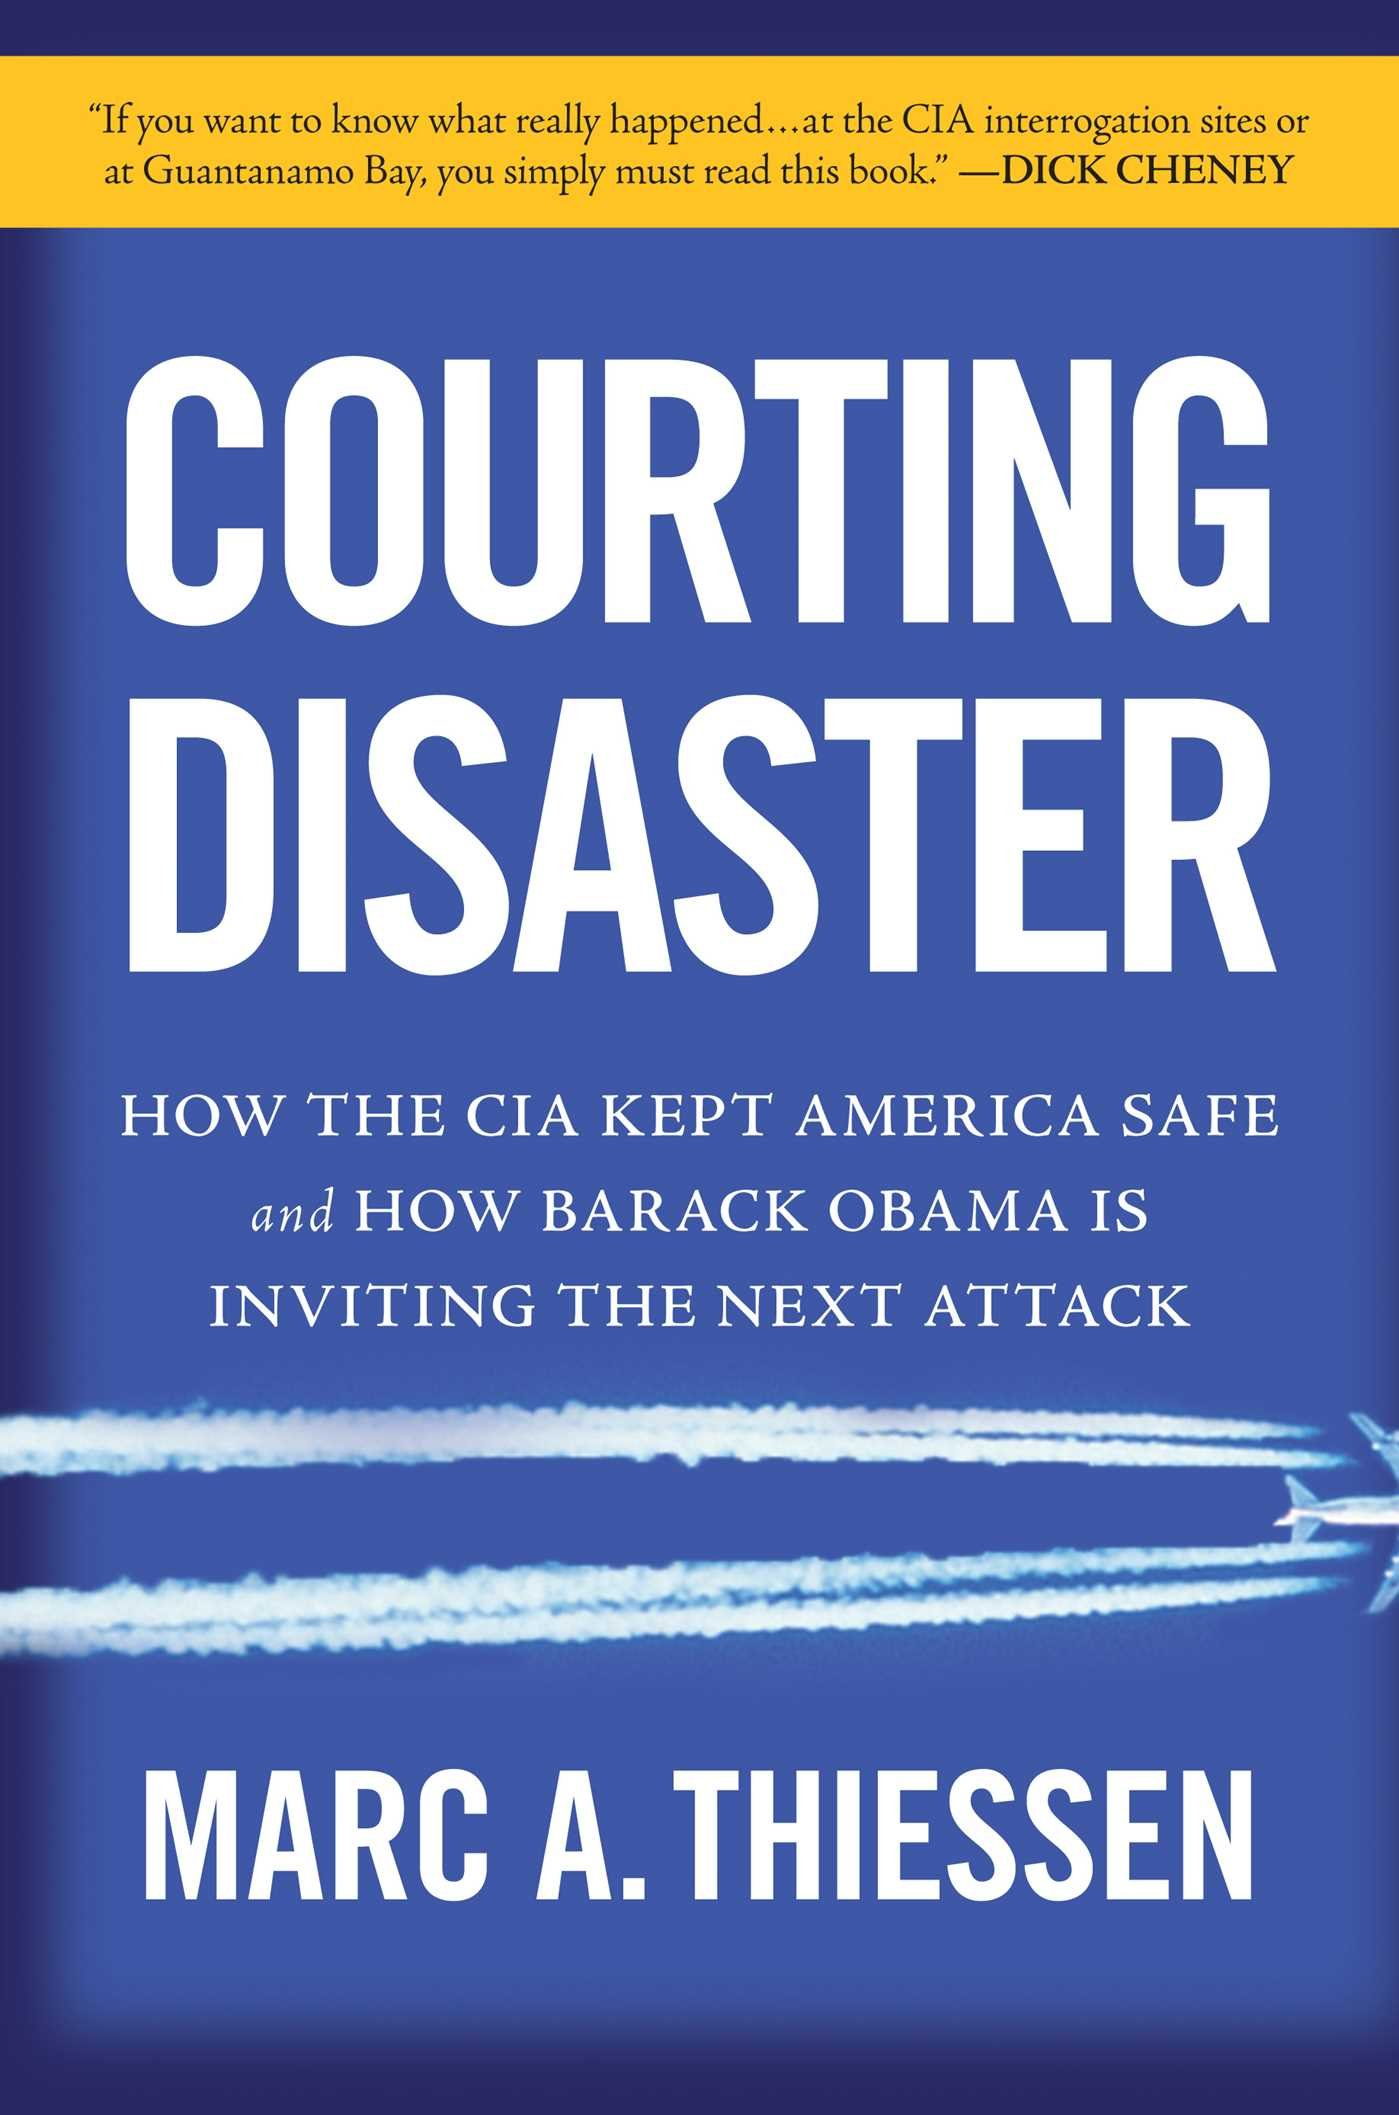 Read Online Courting Disaster: How the CIA Kept America Safe and How Barack Obama Is Inviting the Next Attack ebook